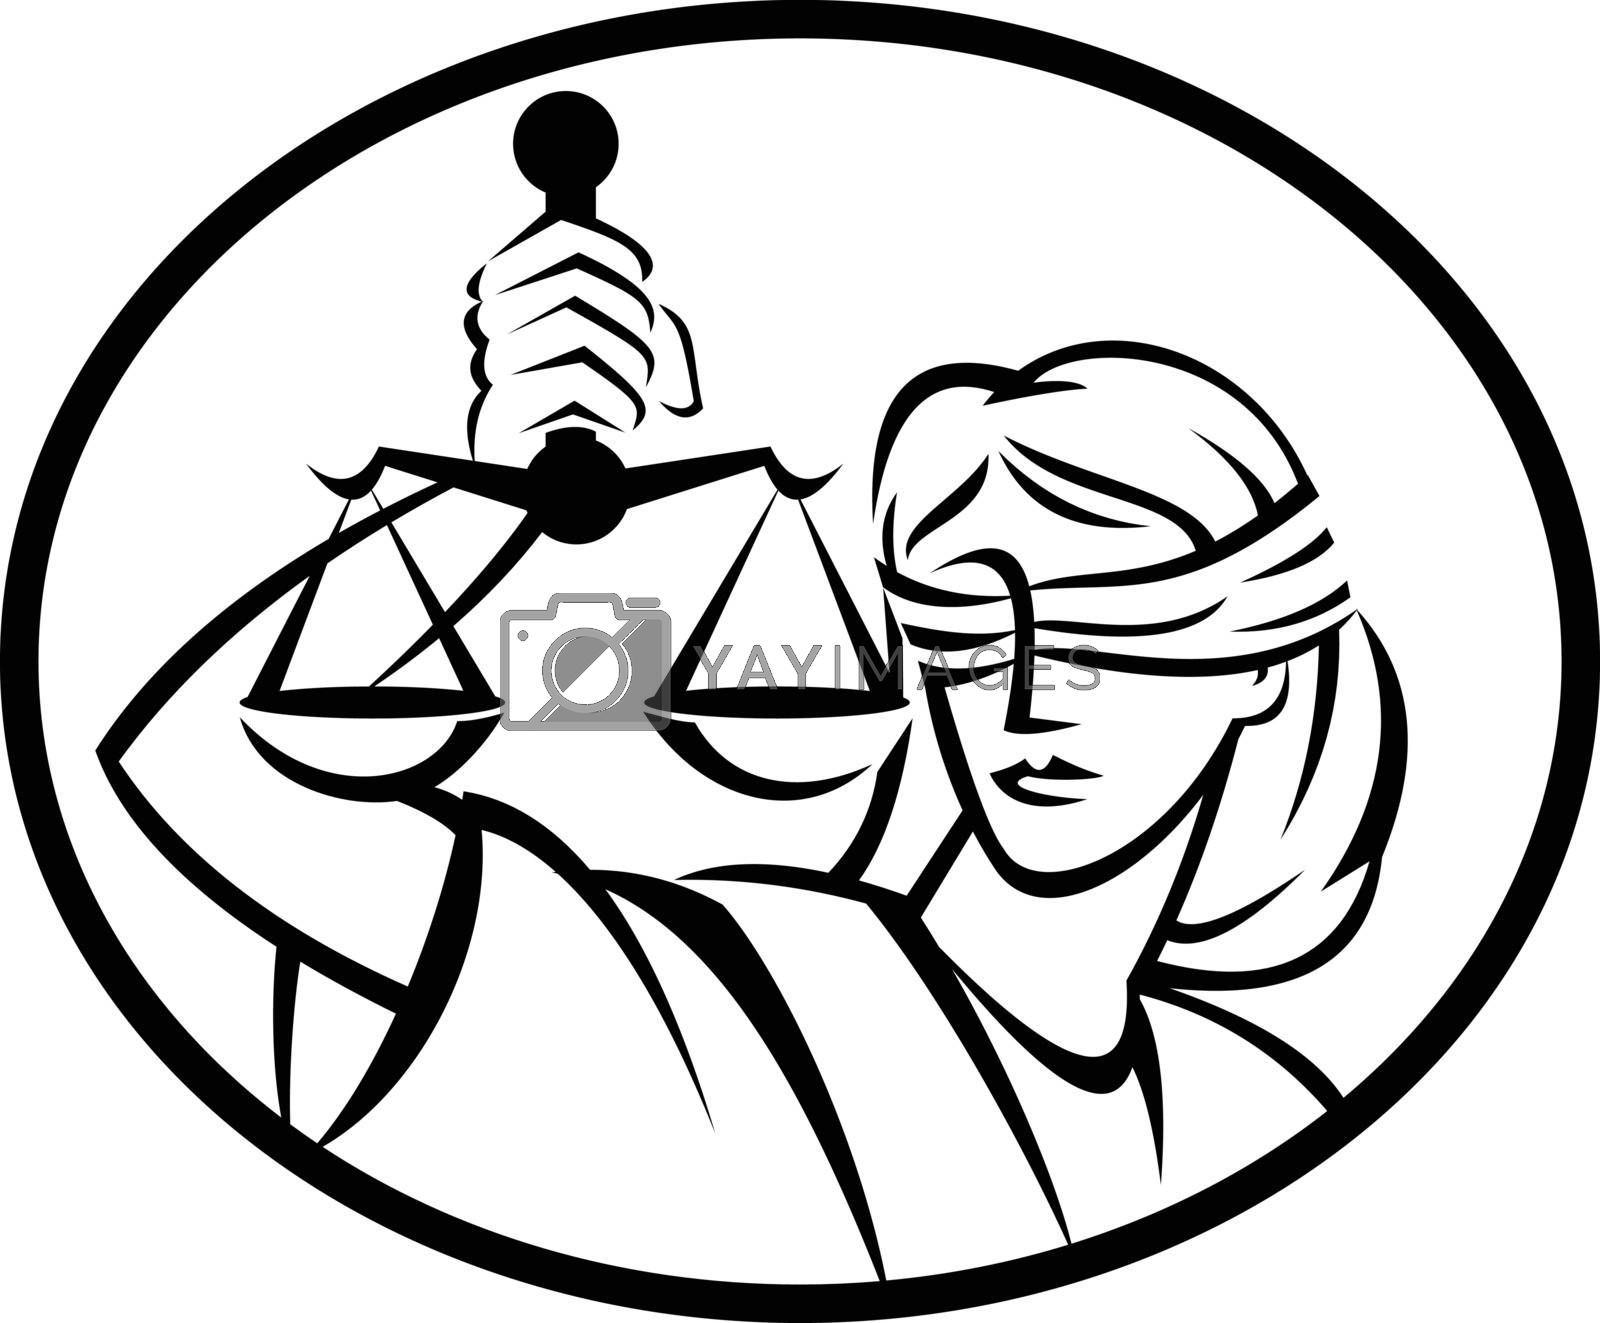 Retro style illustration of Lady Justice with blindfold and beam balance or weighing scale set inside oval on isolated background done in black and white.